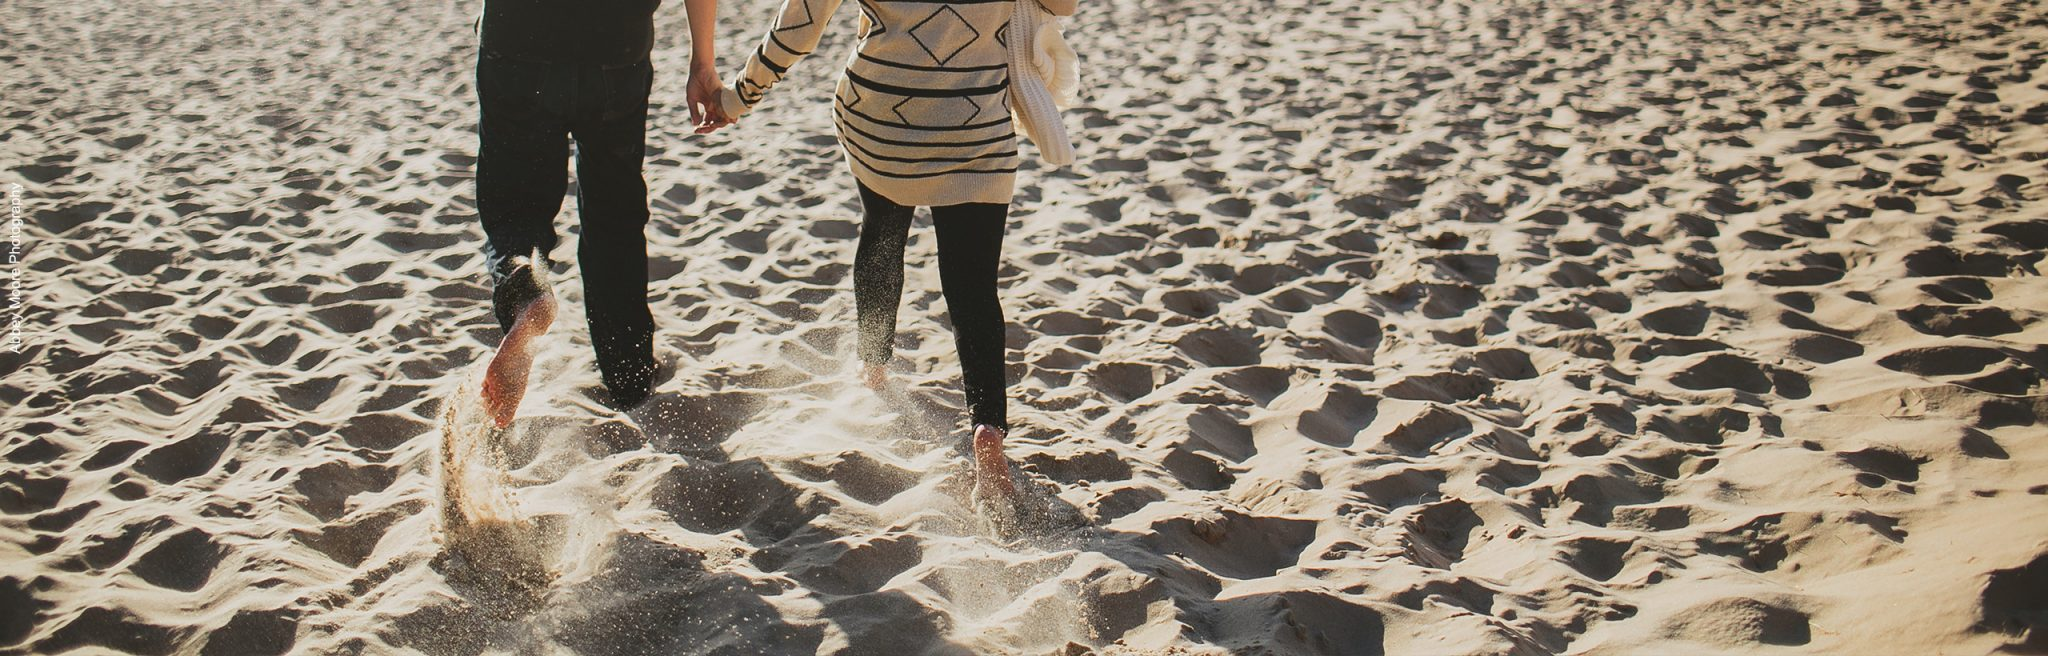 Couple-Running-Through-Sand-PageSlider-Recovered